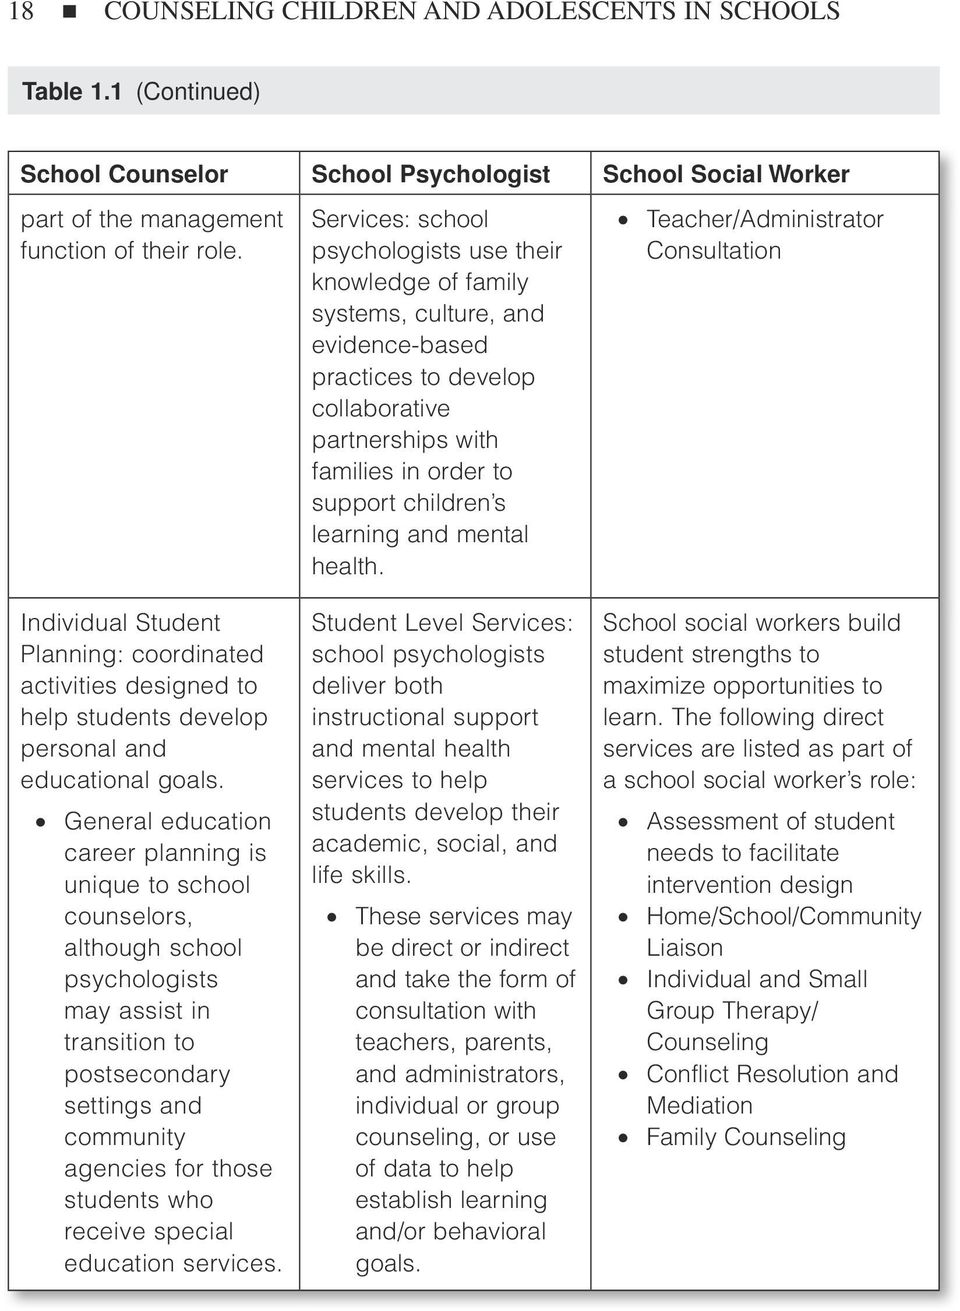 General education career planning is unique to school counselors, although school psychologists may assist in transition to postsecondary settings and community agencies for those students who